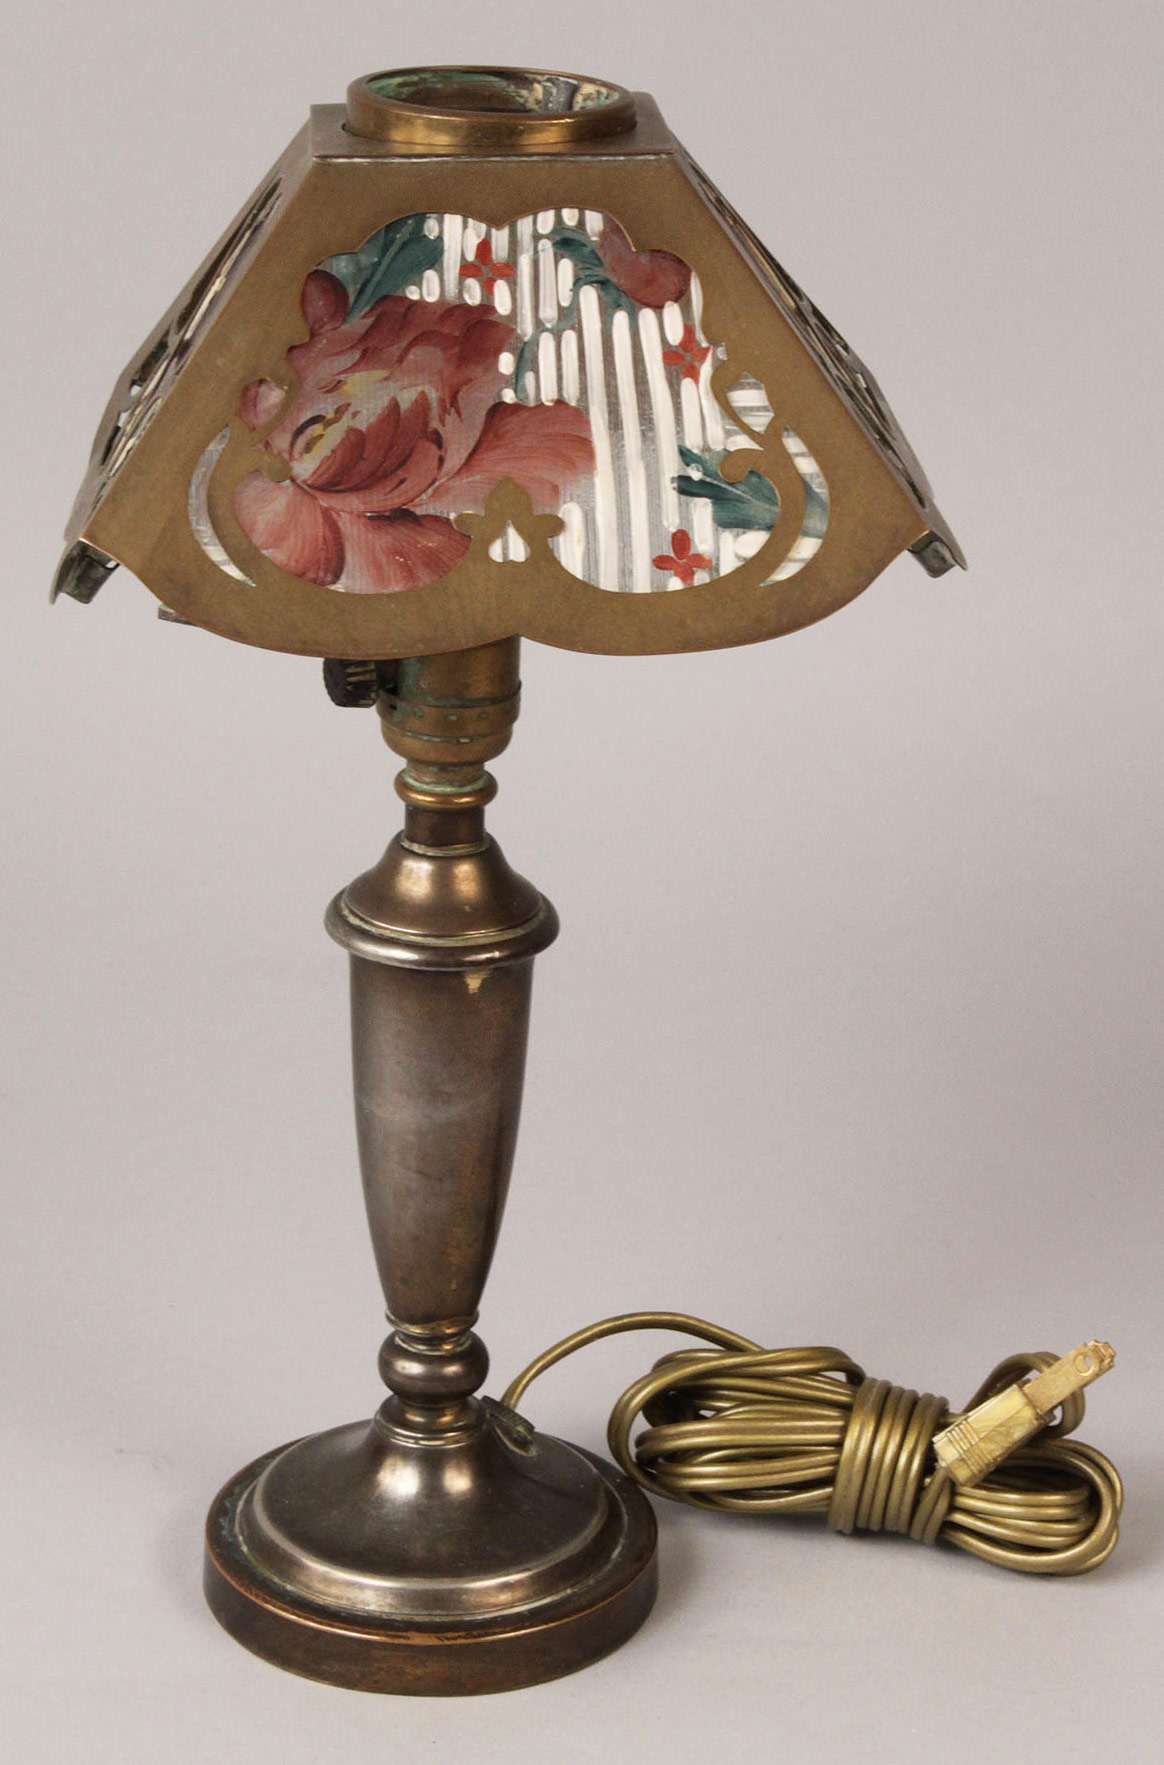 190: Boudoir Table Lamp, possibly Pairpoint